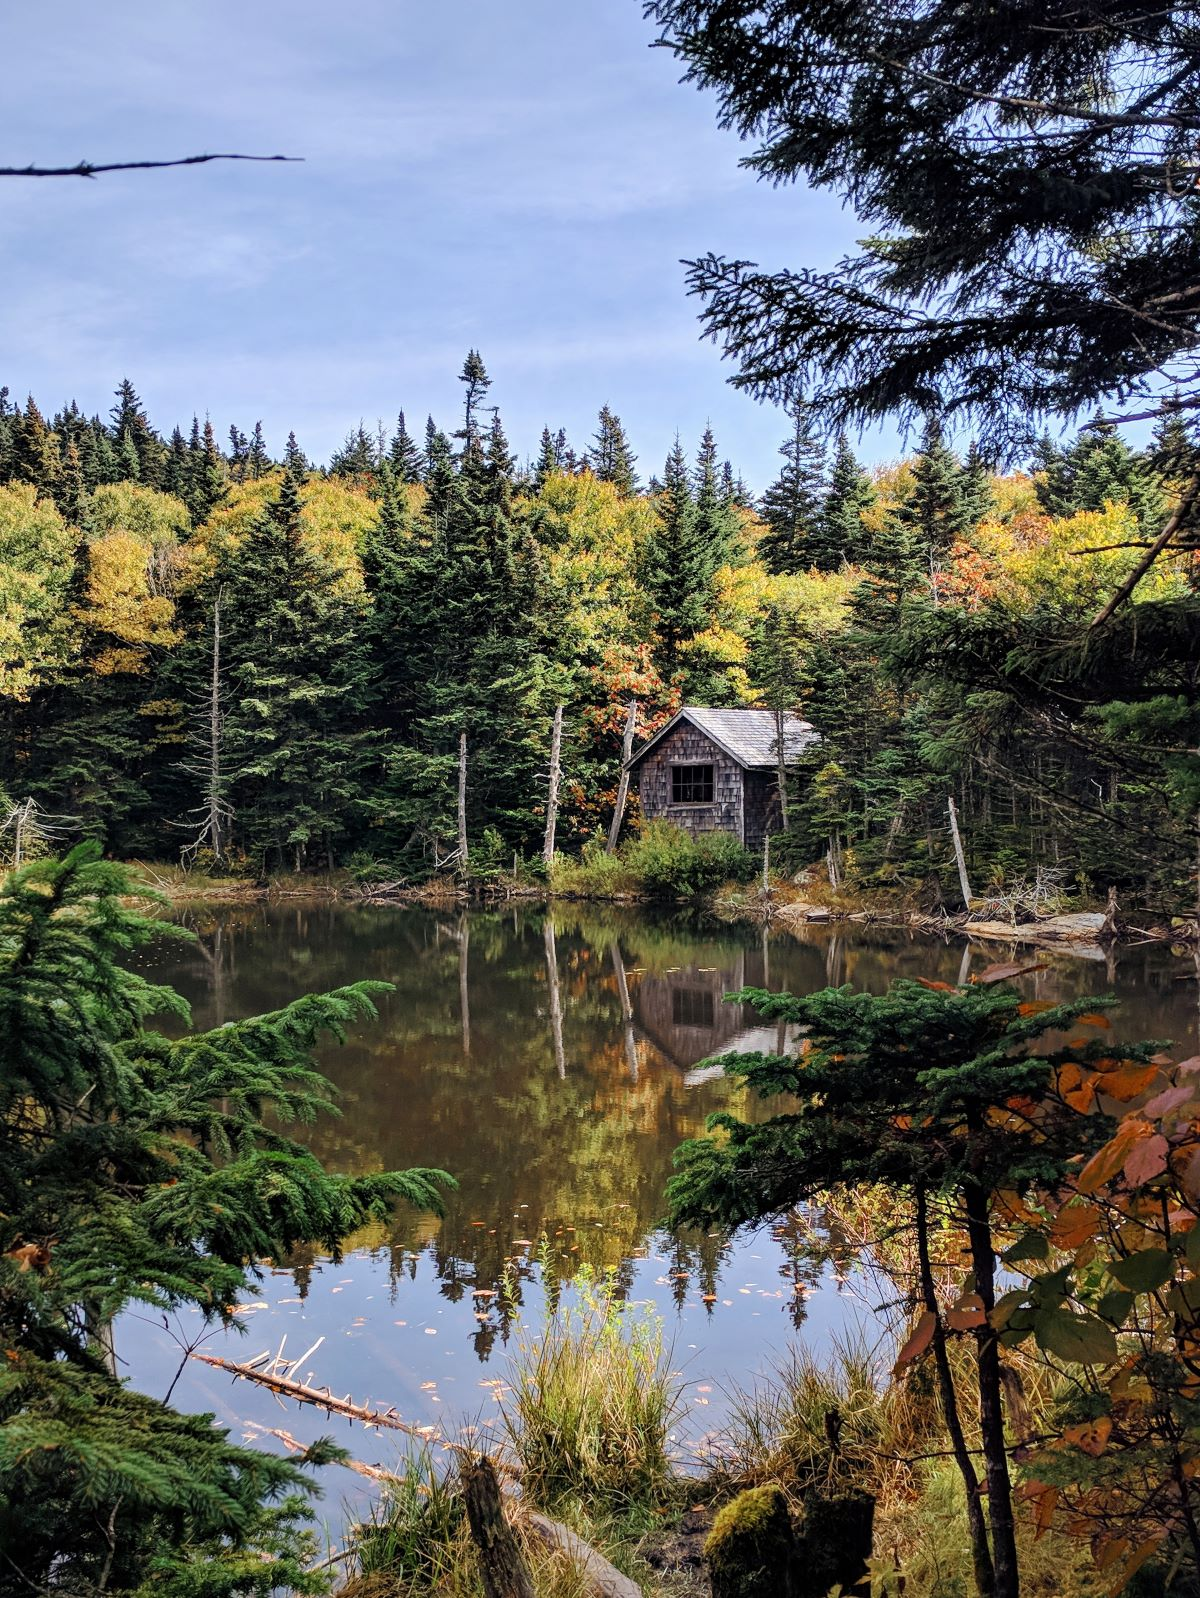 Mt Greylock hiking trail - cabin in the woods across the pond, surrounded by evergreens